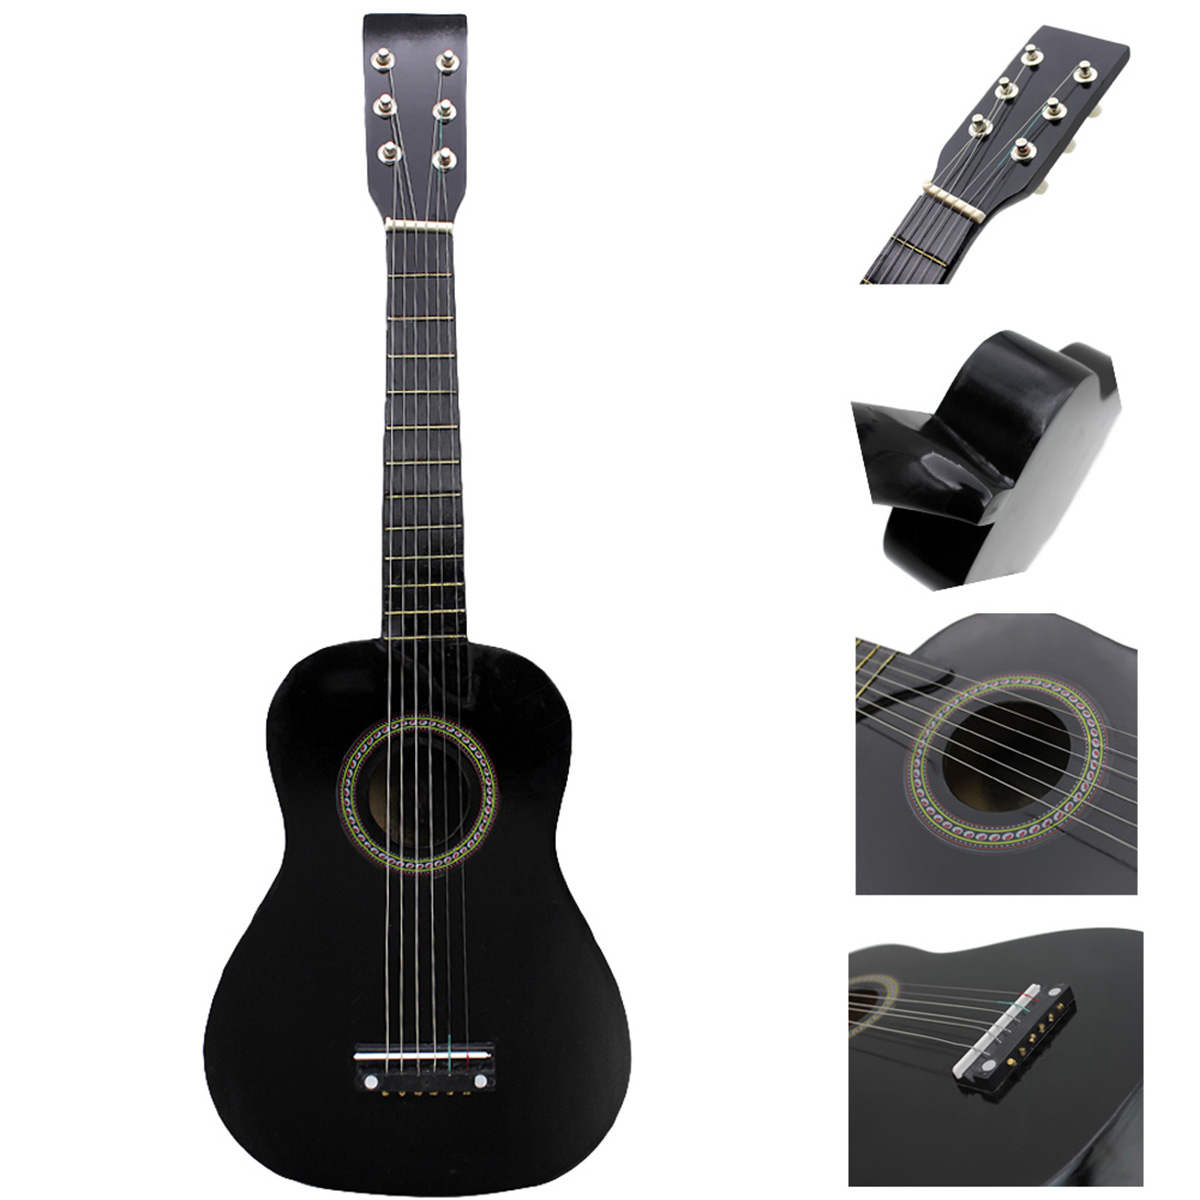 buy xfdz irin mini 23 inch basswood 12 frets 6 string acoustic guitar with pick. Black Bedroom Furniture Sets. Home Design Ideas